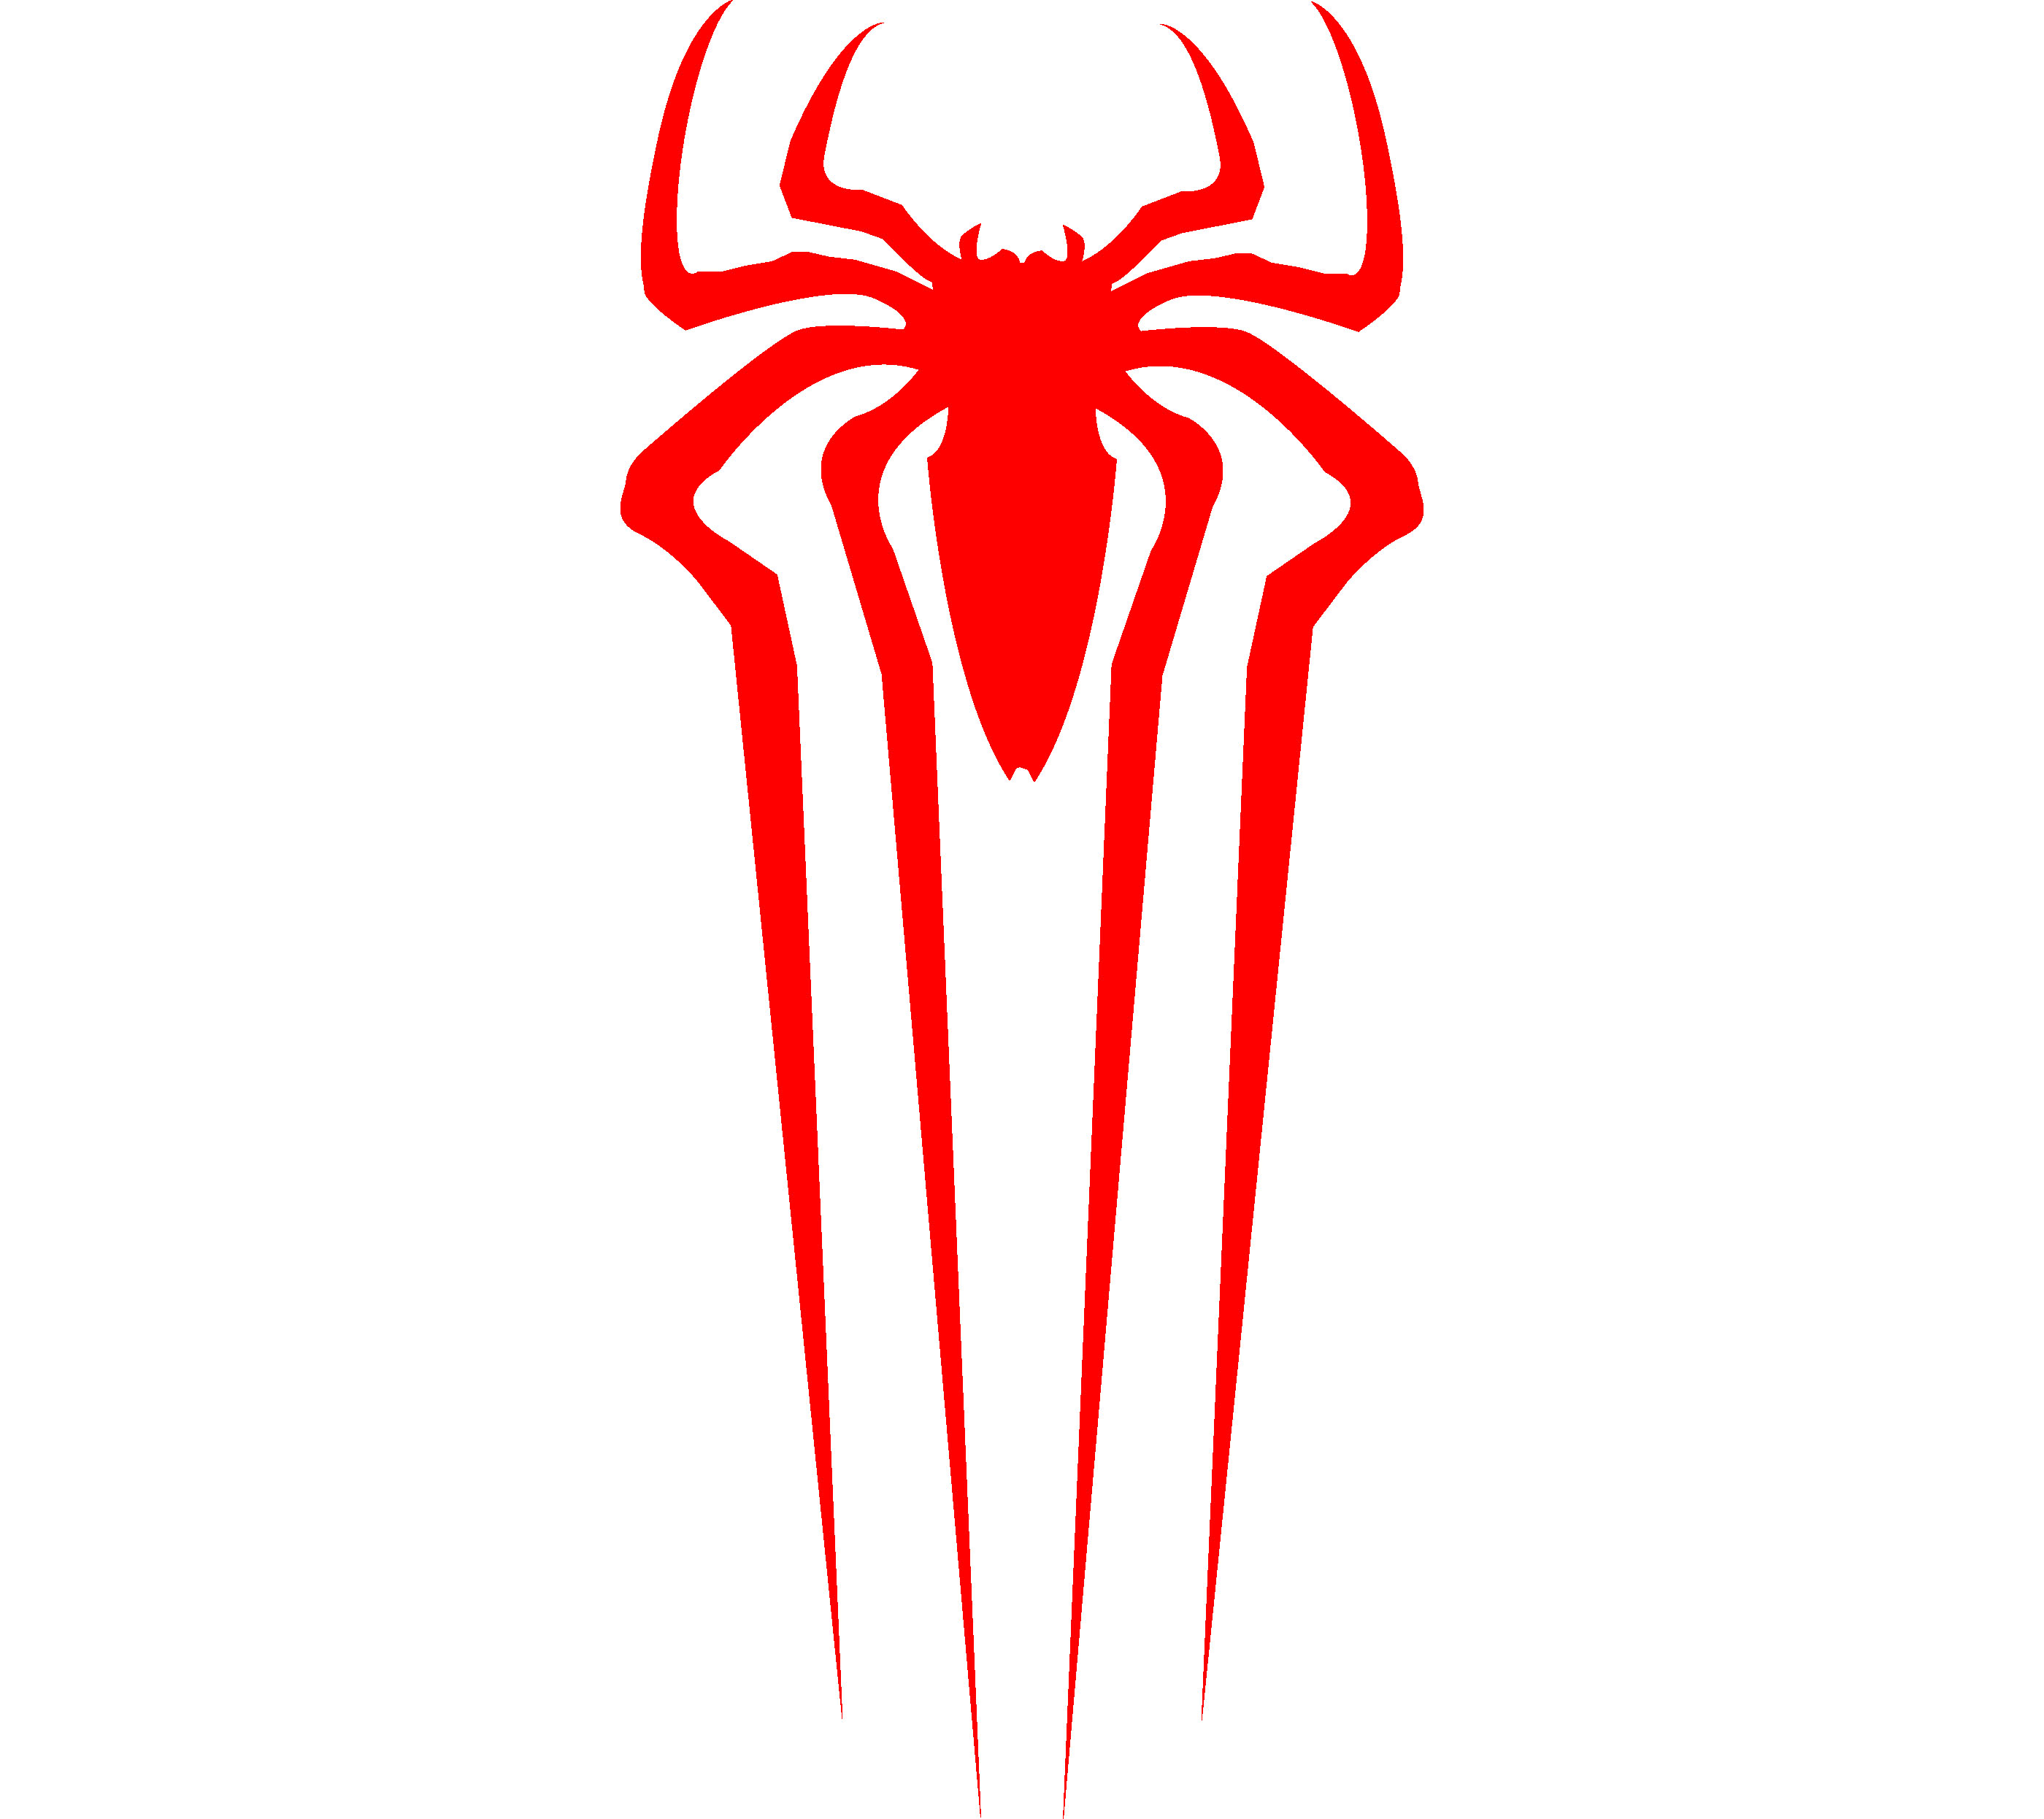 Spiderman Logo, Spiderman Symbol, Meaning, History and ...